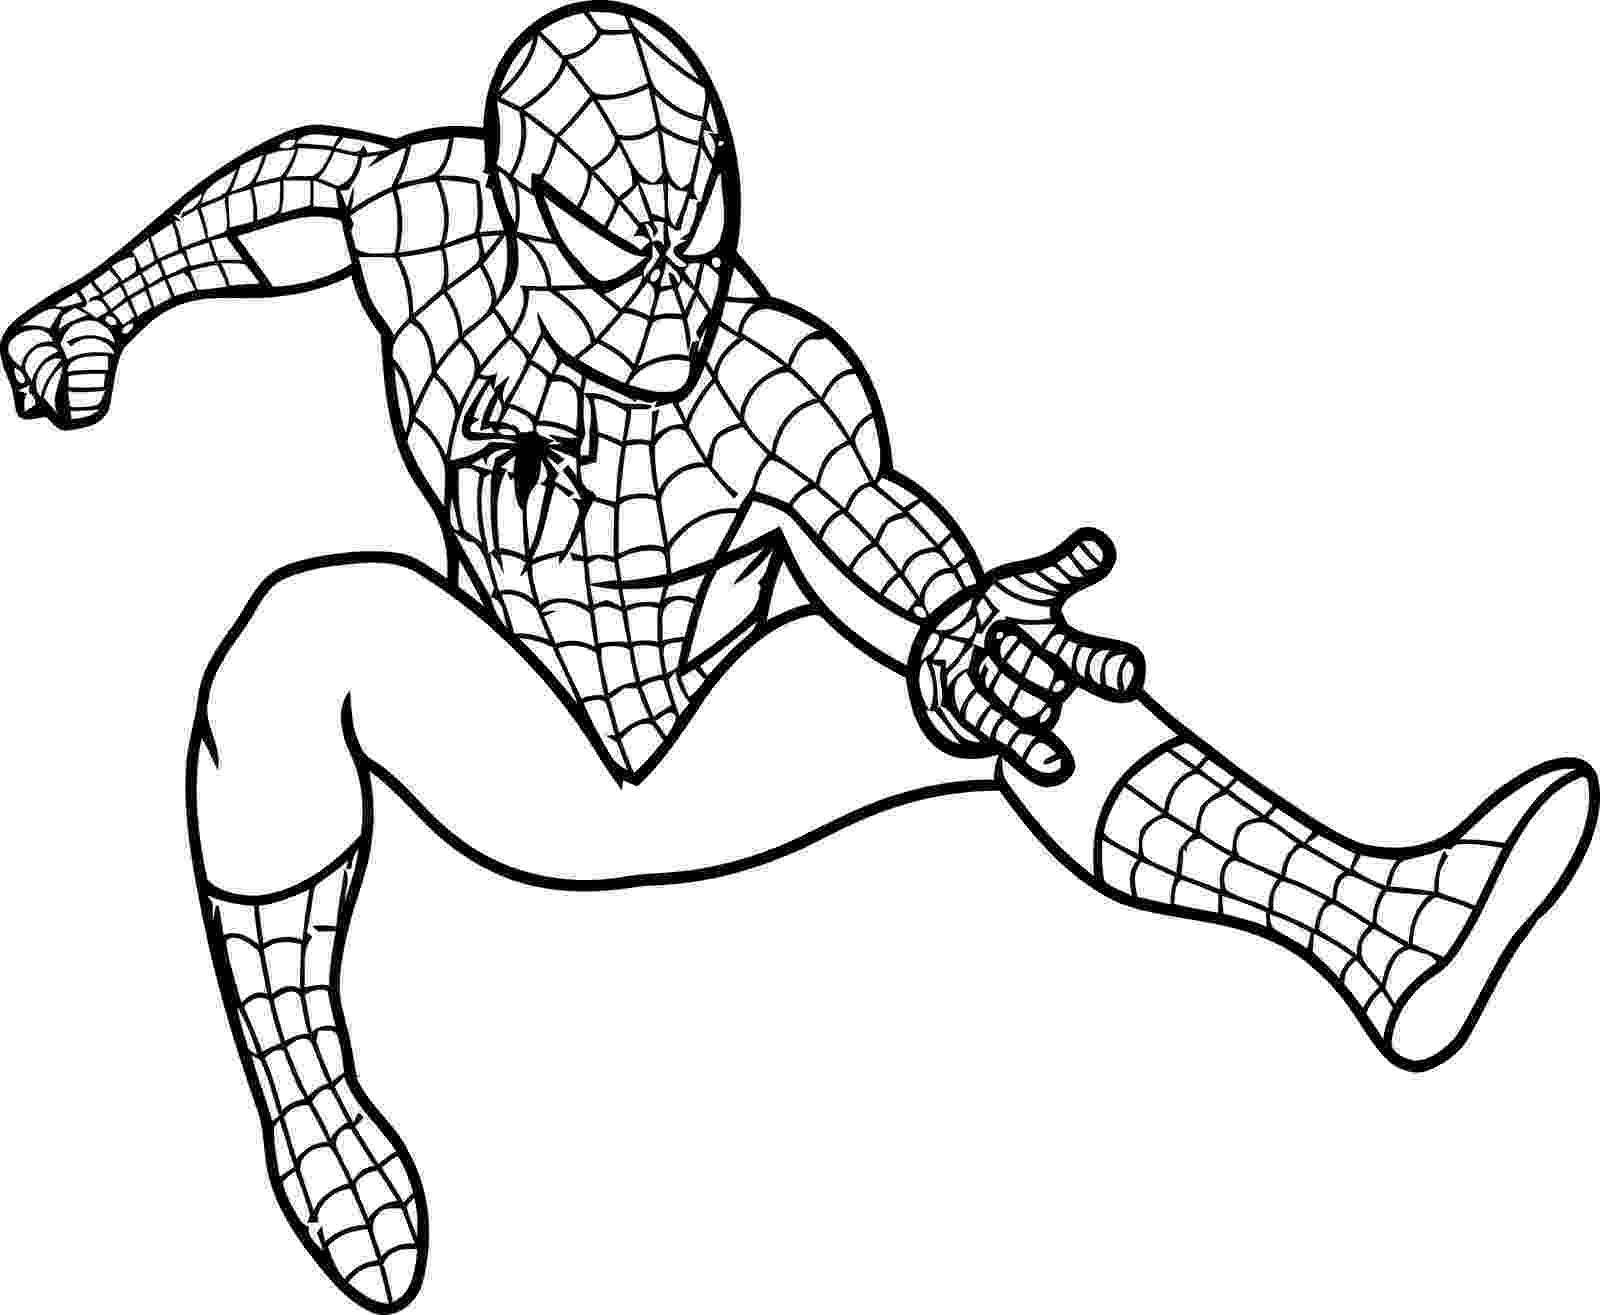 free printable spiderman coloring pages free printable spiderman coloring pages for kids coloring printable free pages spiderman